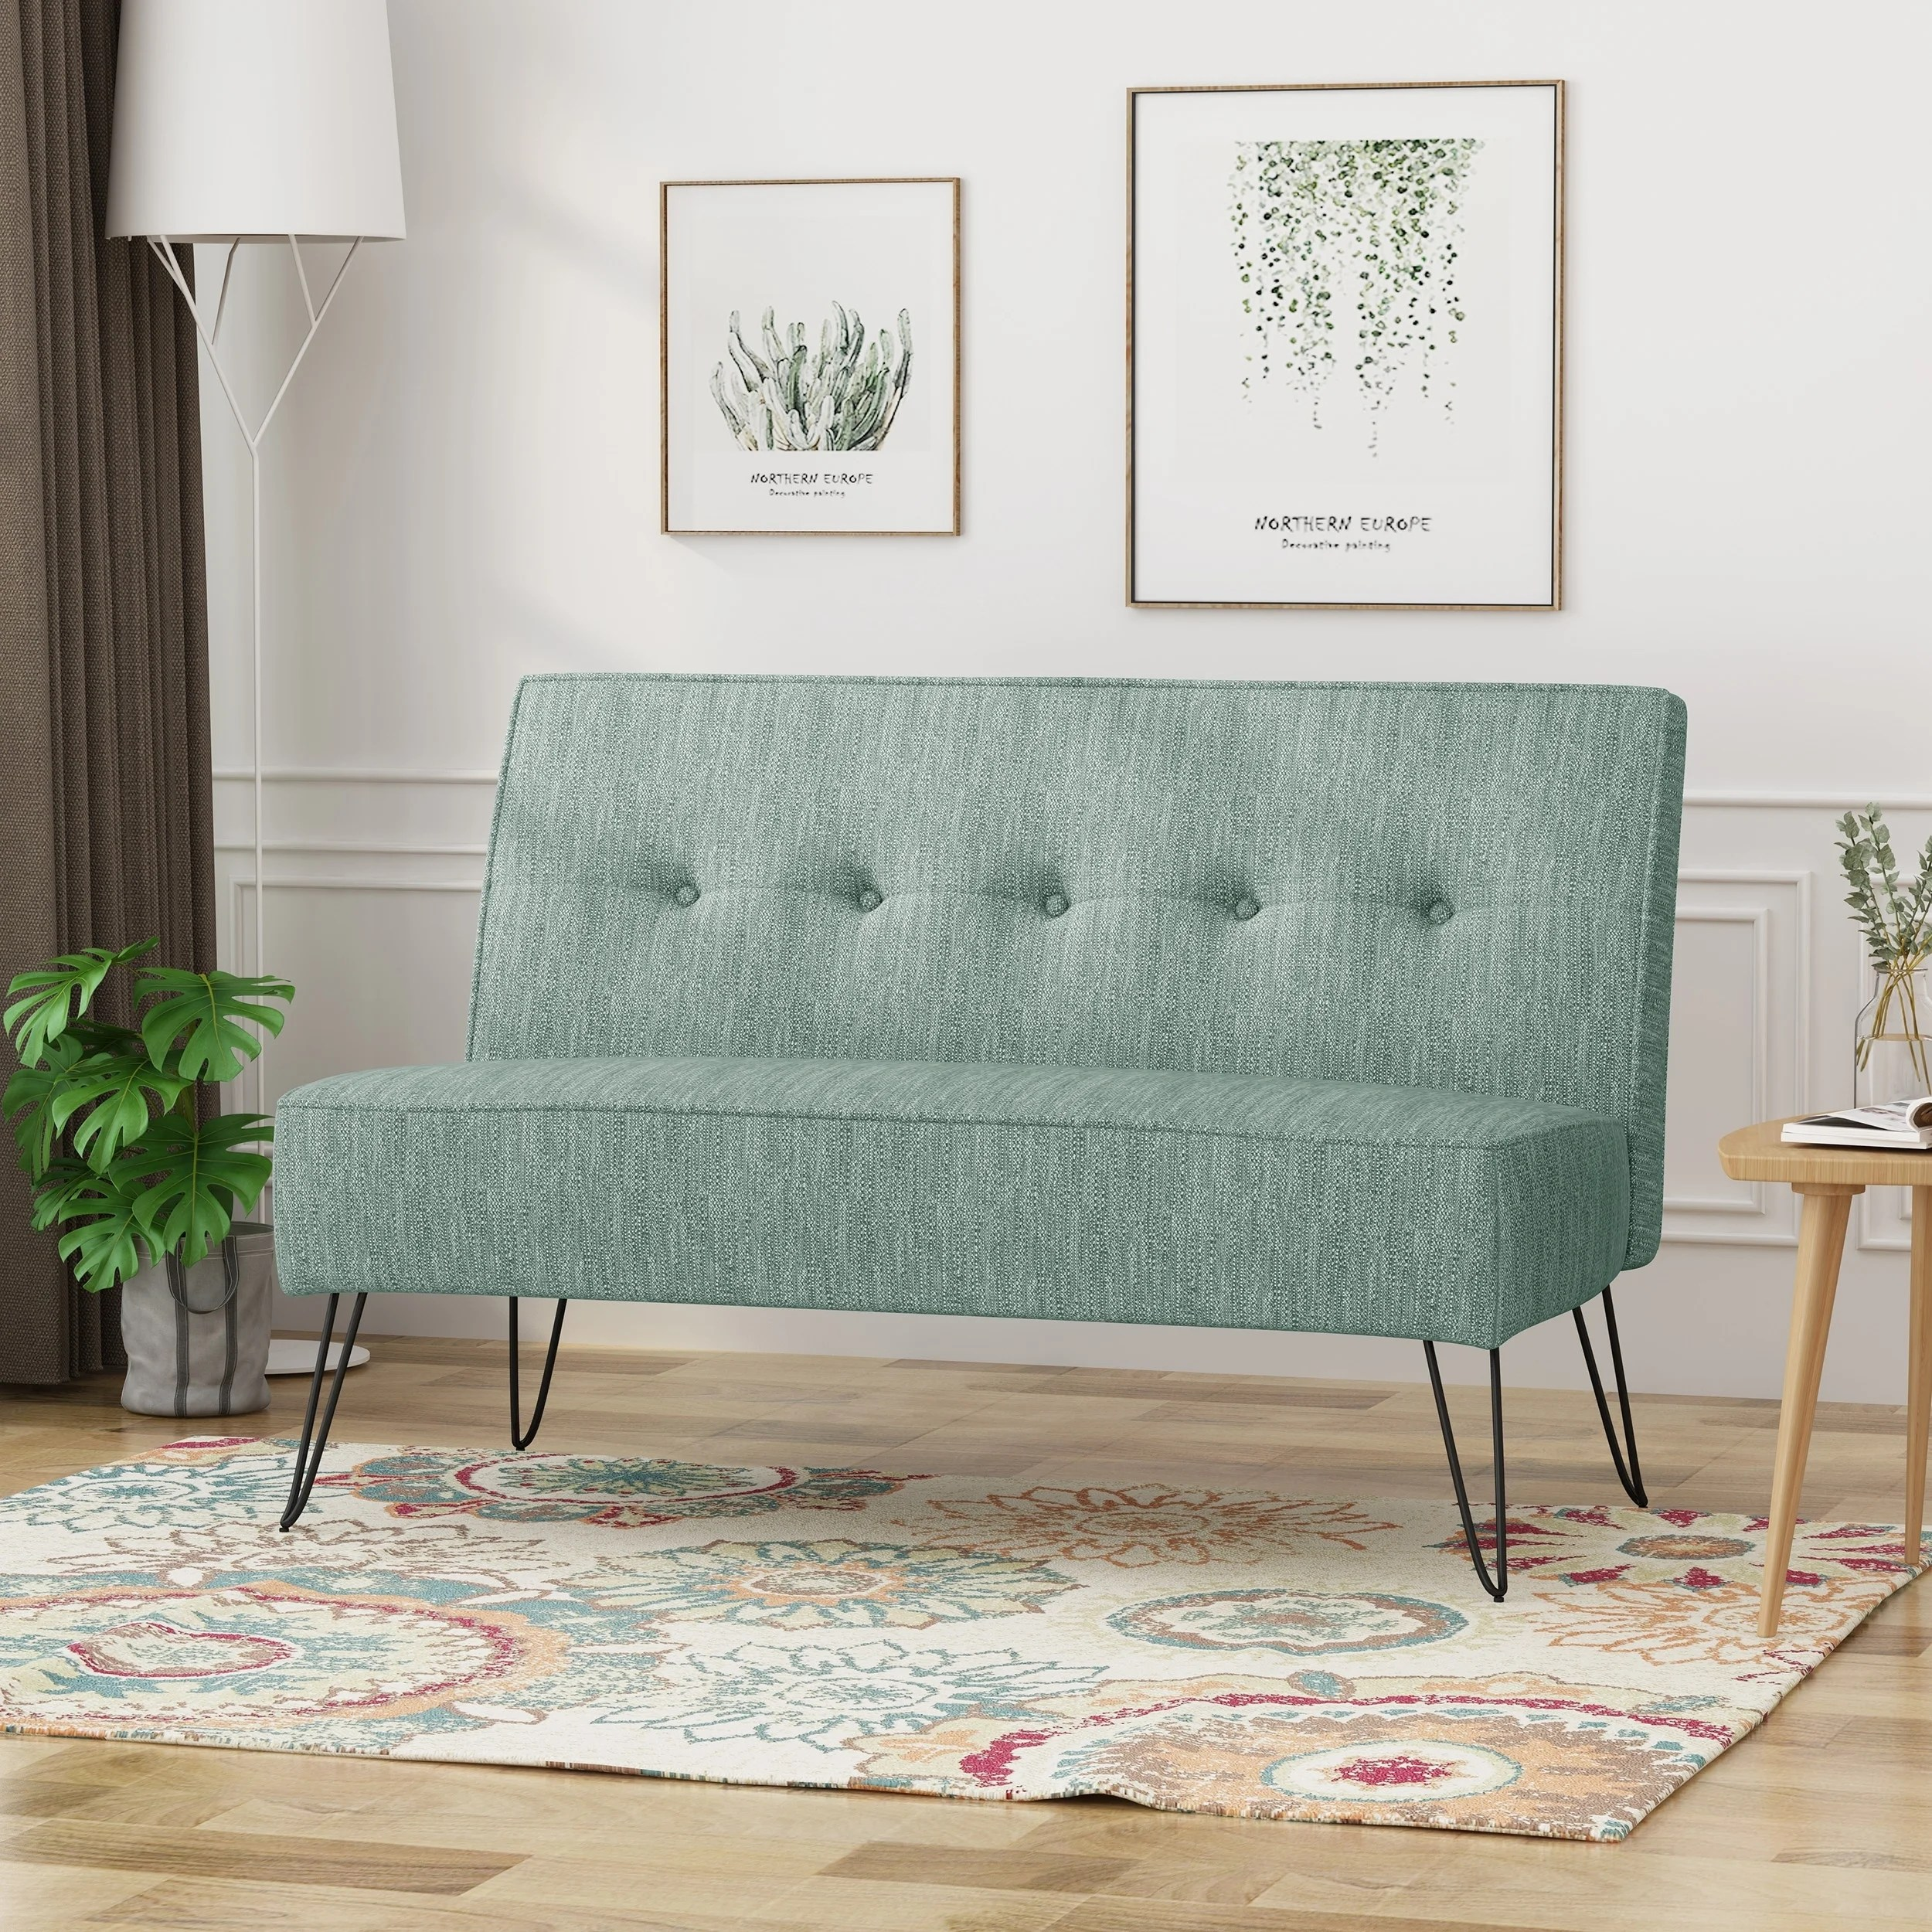 Settee No Arms Buy Armless Sofas Couches Online At Overstock Our Best Living